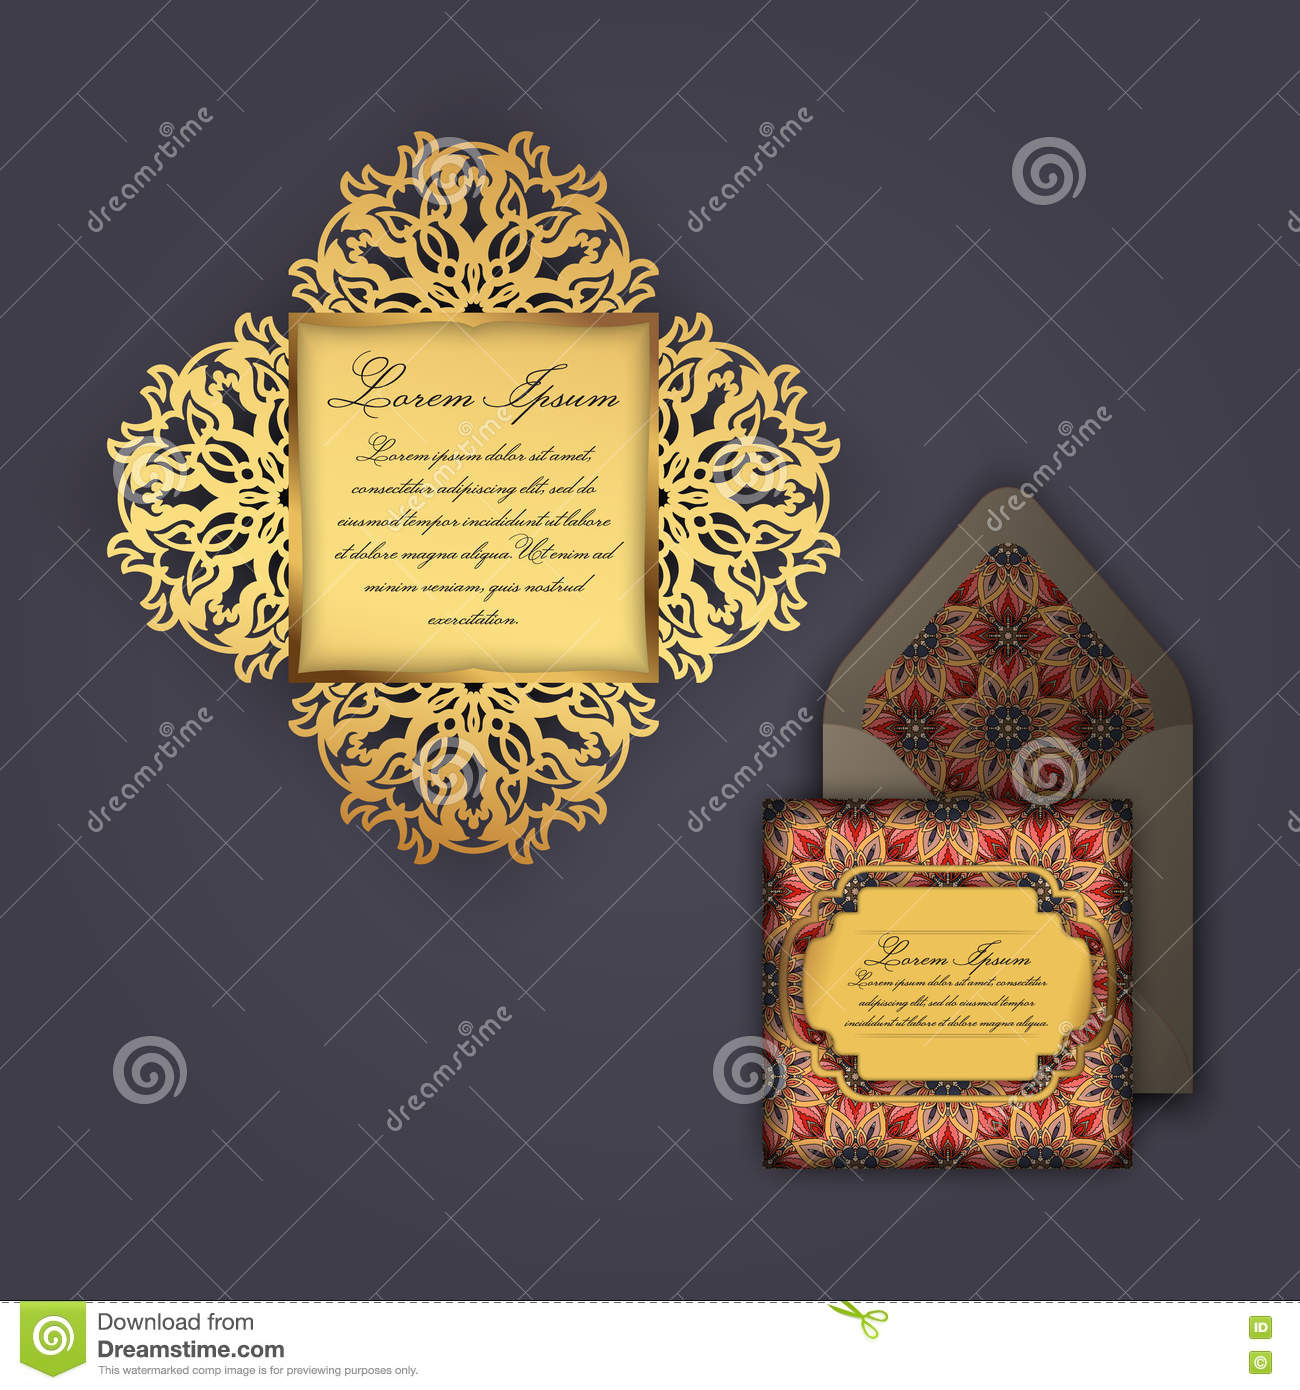 Wedding invitation or greeting card with vintage floral ornament download comp stopboris Image collections